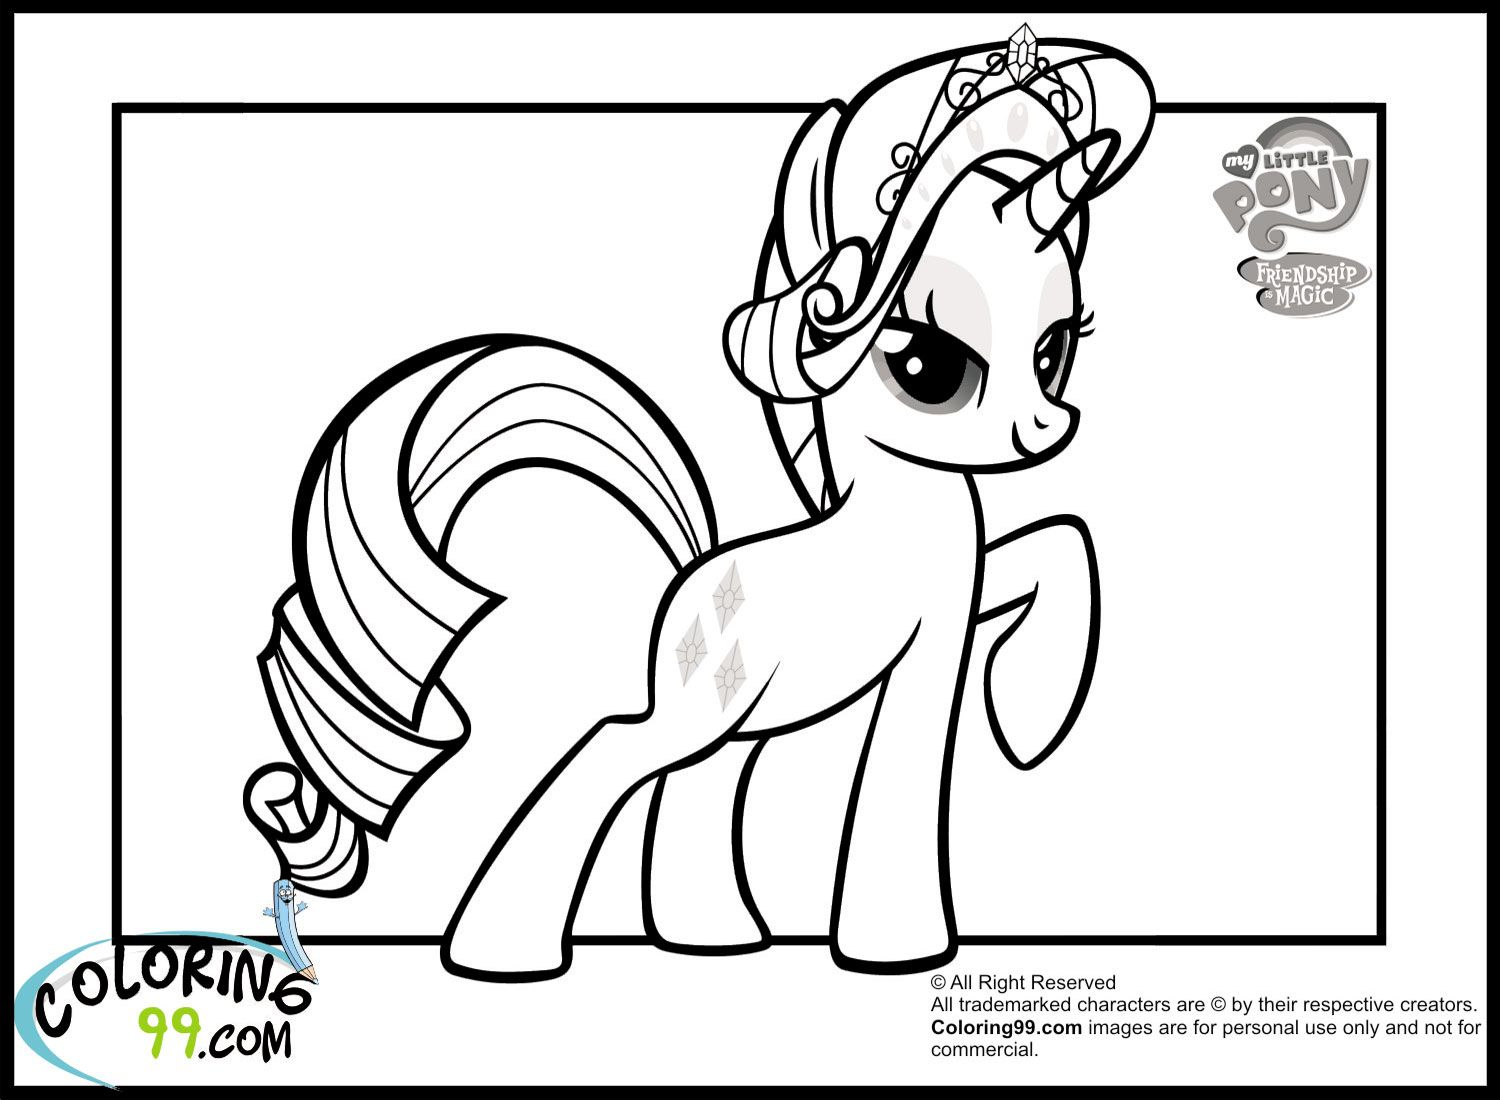 My little pony friendship is magic coloring pages princess cadence - Mlp Printable Coloring Pages Greatest My Little Pony Coloring Pages Friendship Is Magic